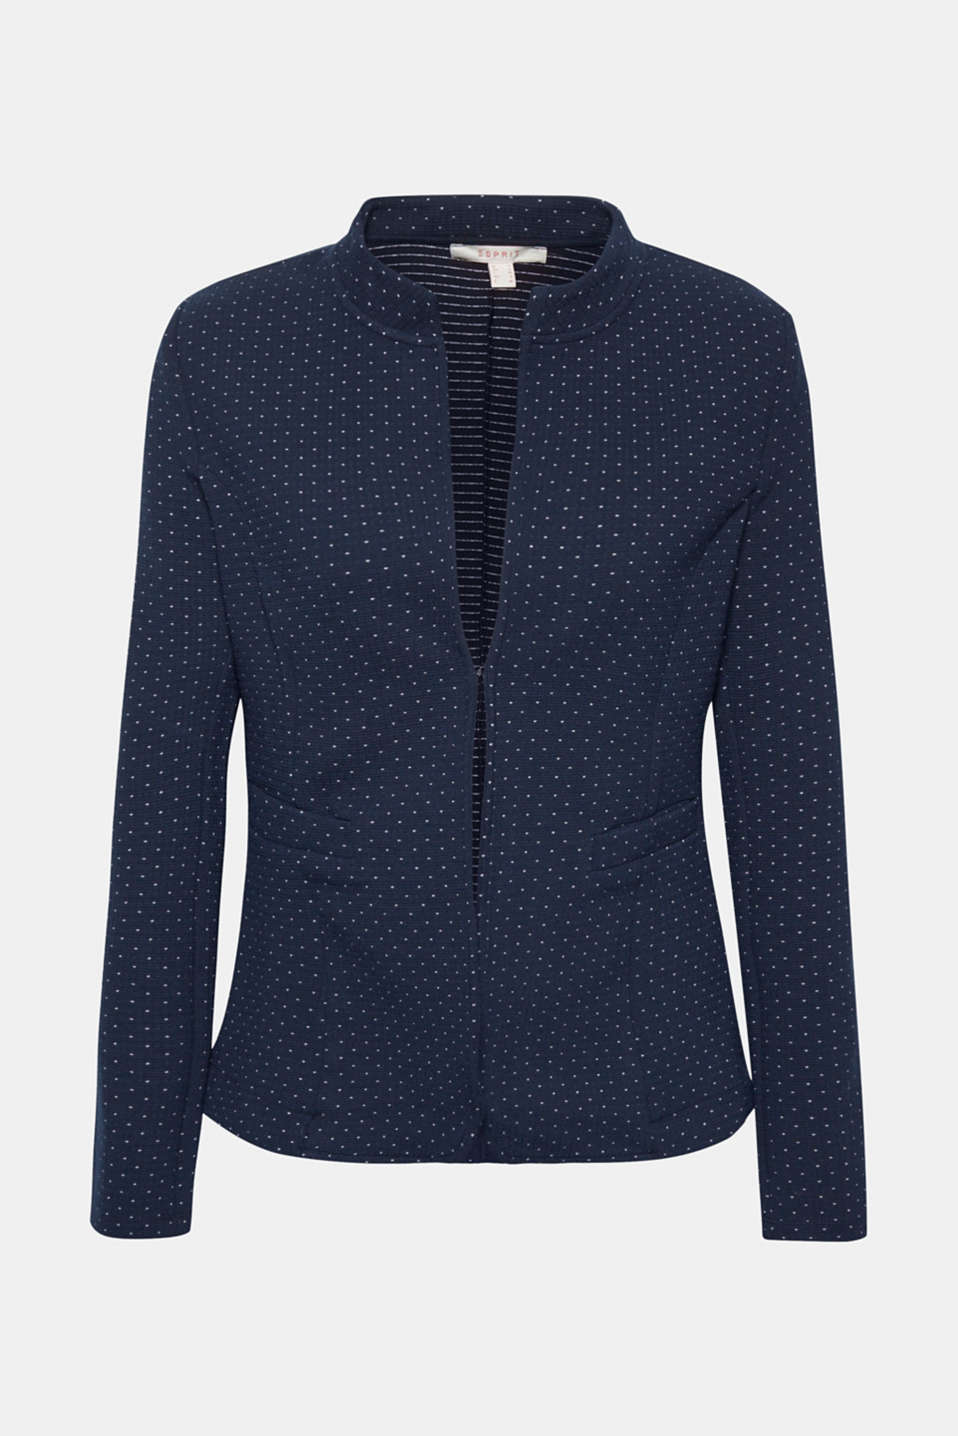 Stretch jersey blazer with jacquard polka dots, NAVY, detail image number 6